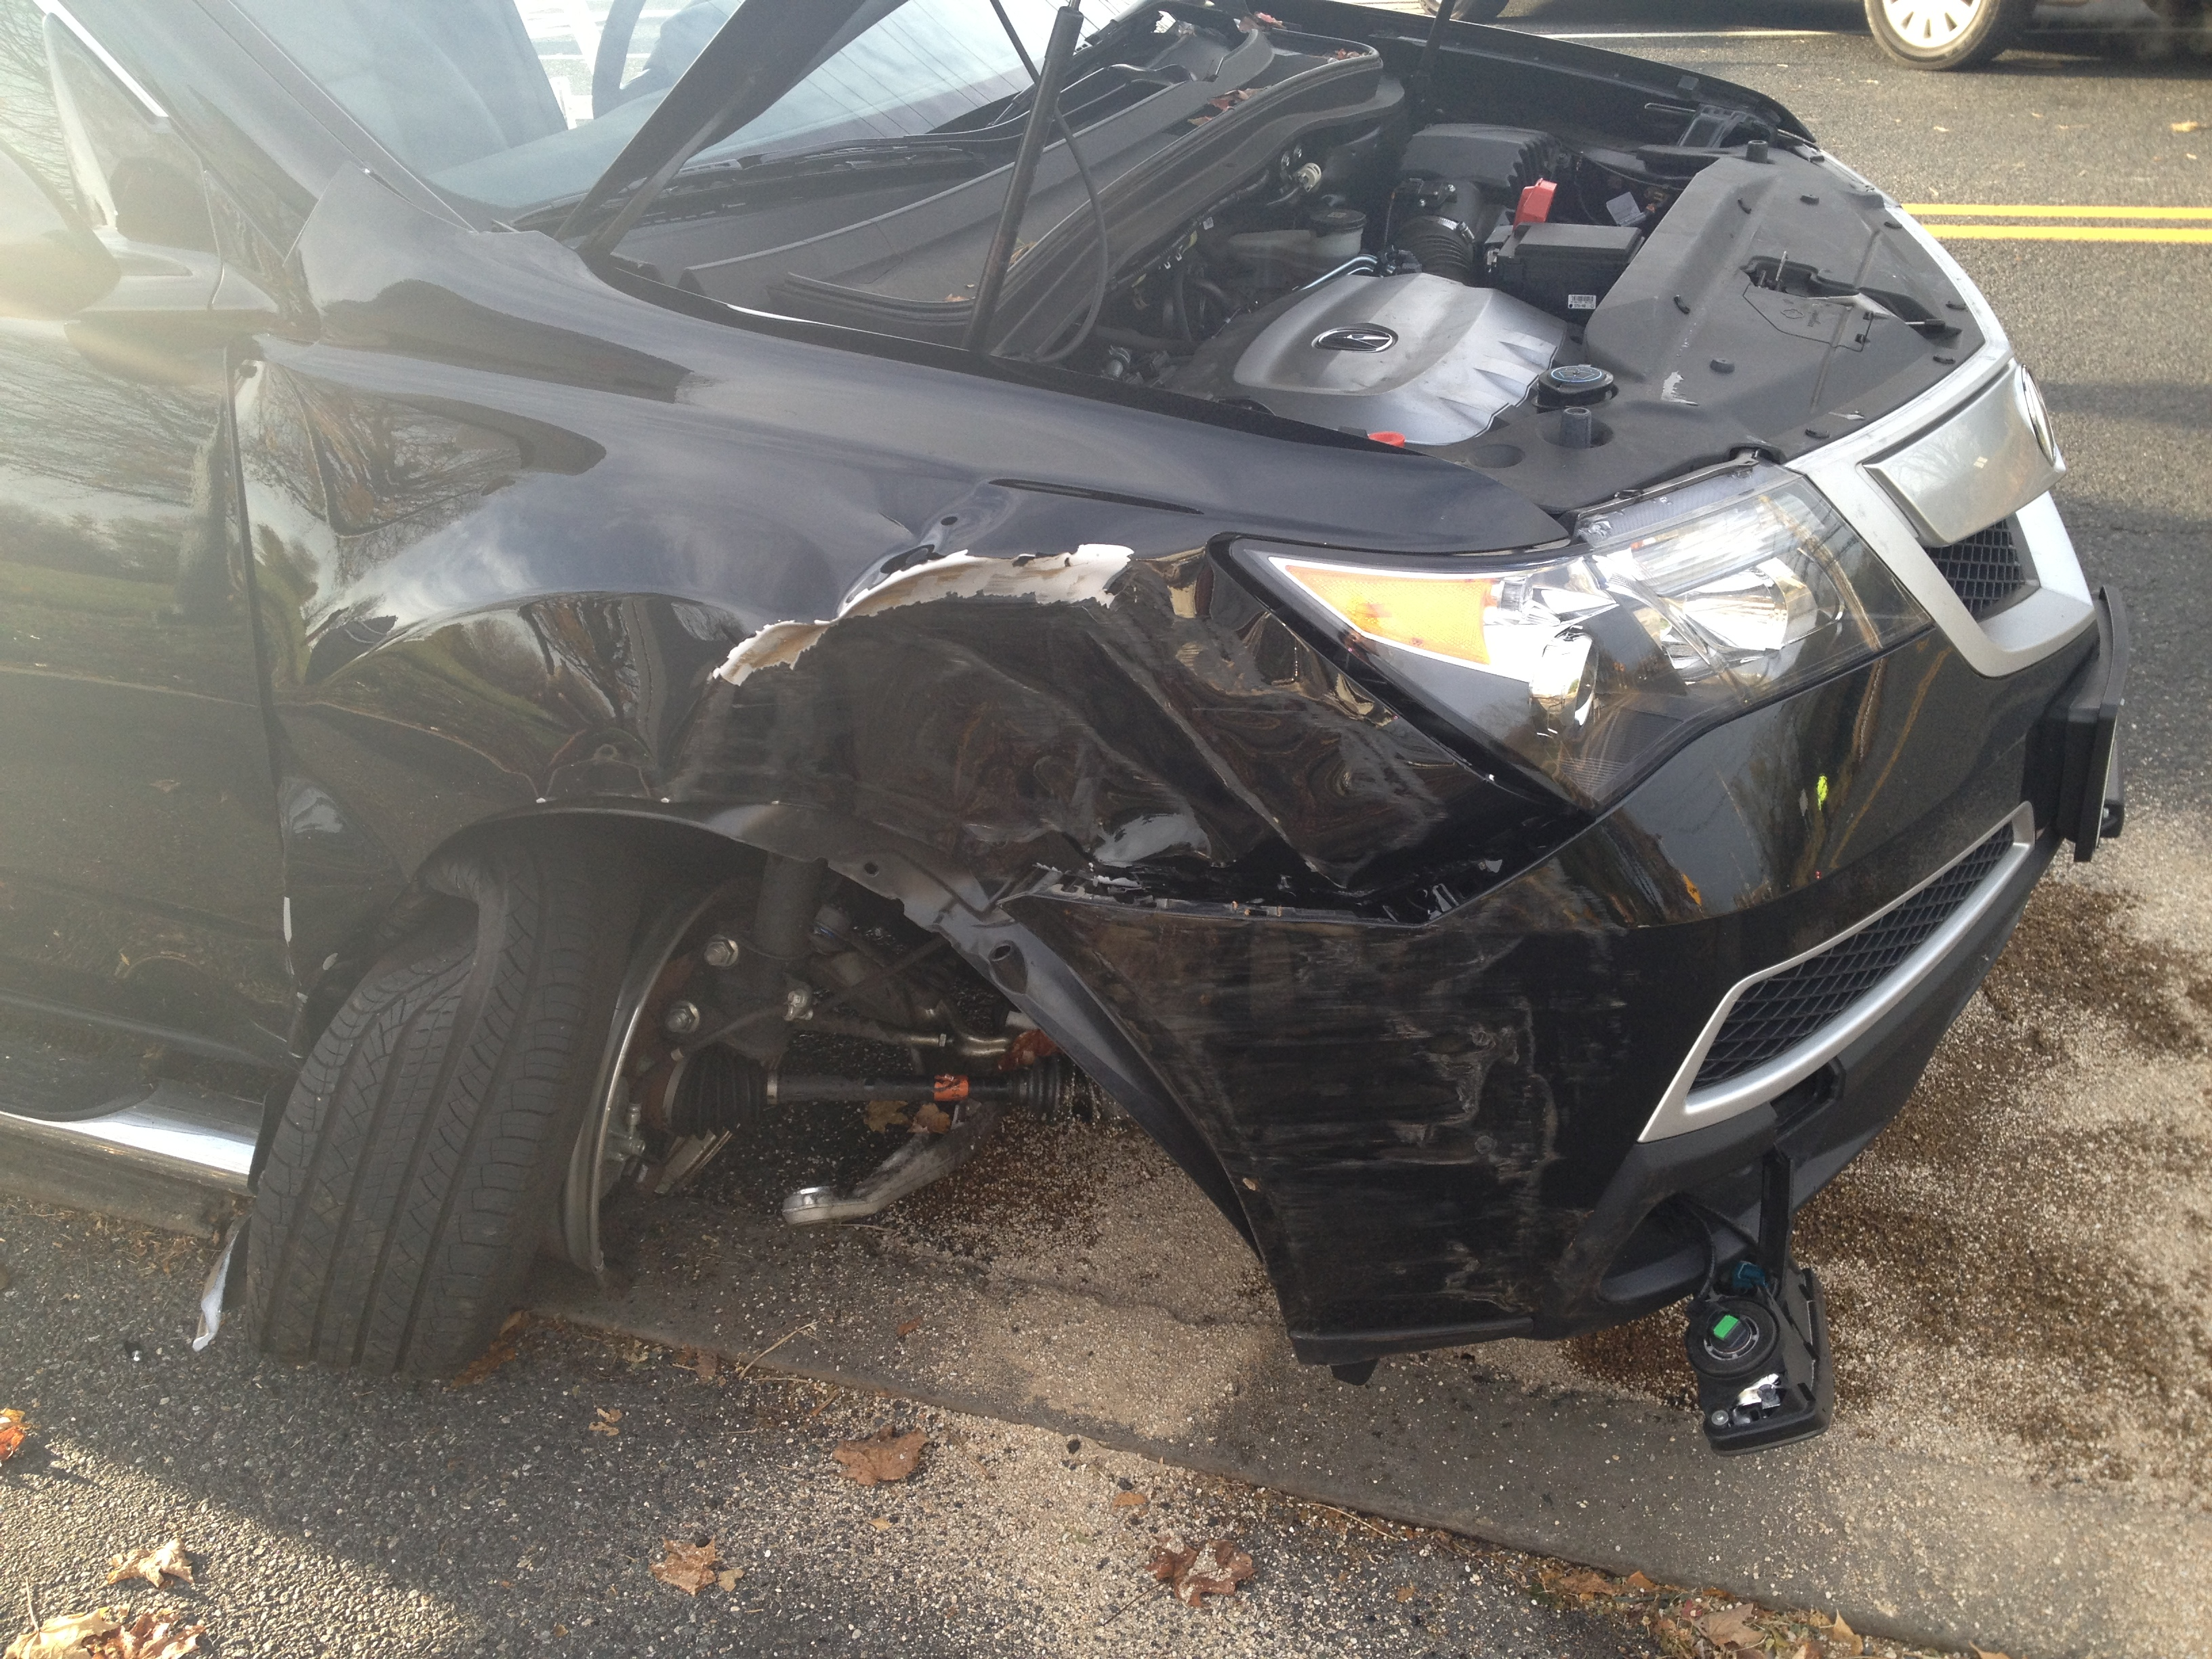 2011 MDX Accident - Is it totaled?-img_0559.jpg